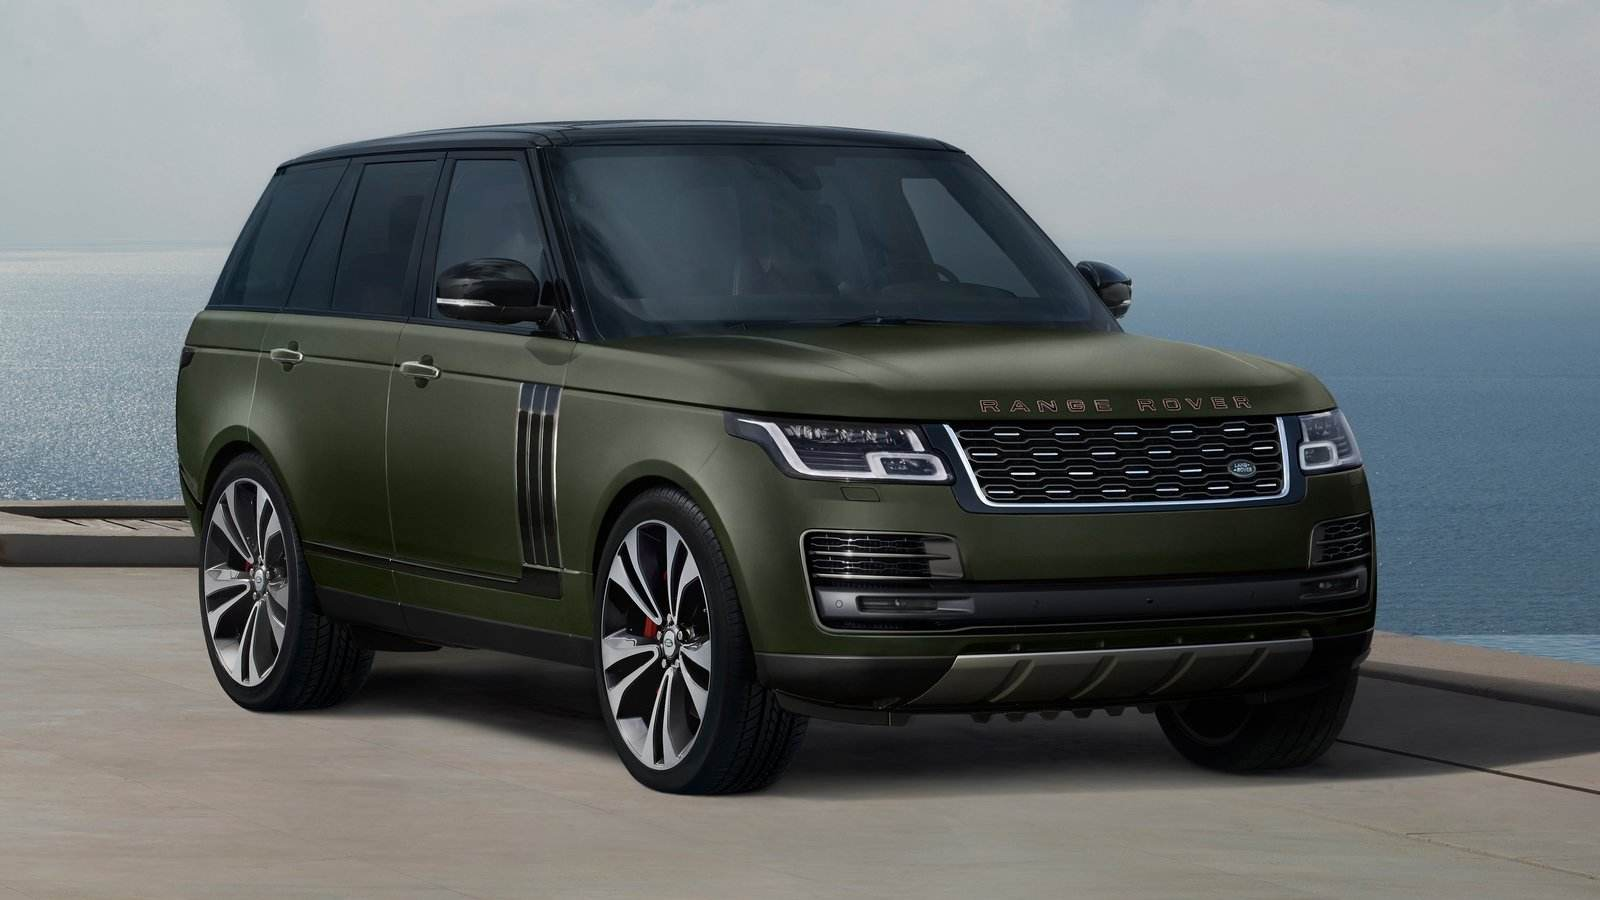 Range Rover SVAutobiography Ultimate editions debut, V8 and hybrid powertrains on offer- Technology News, Gadgetclock